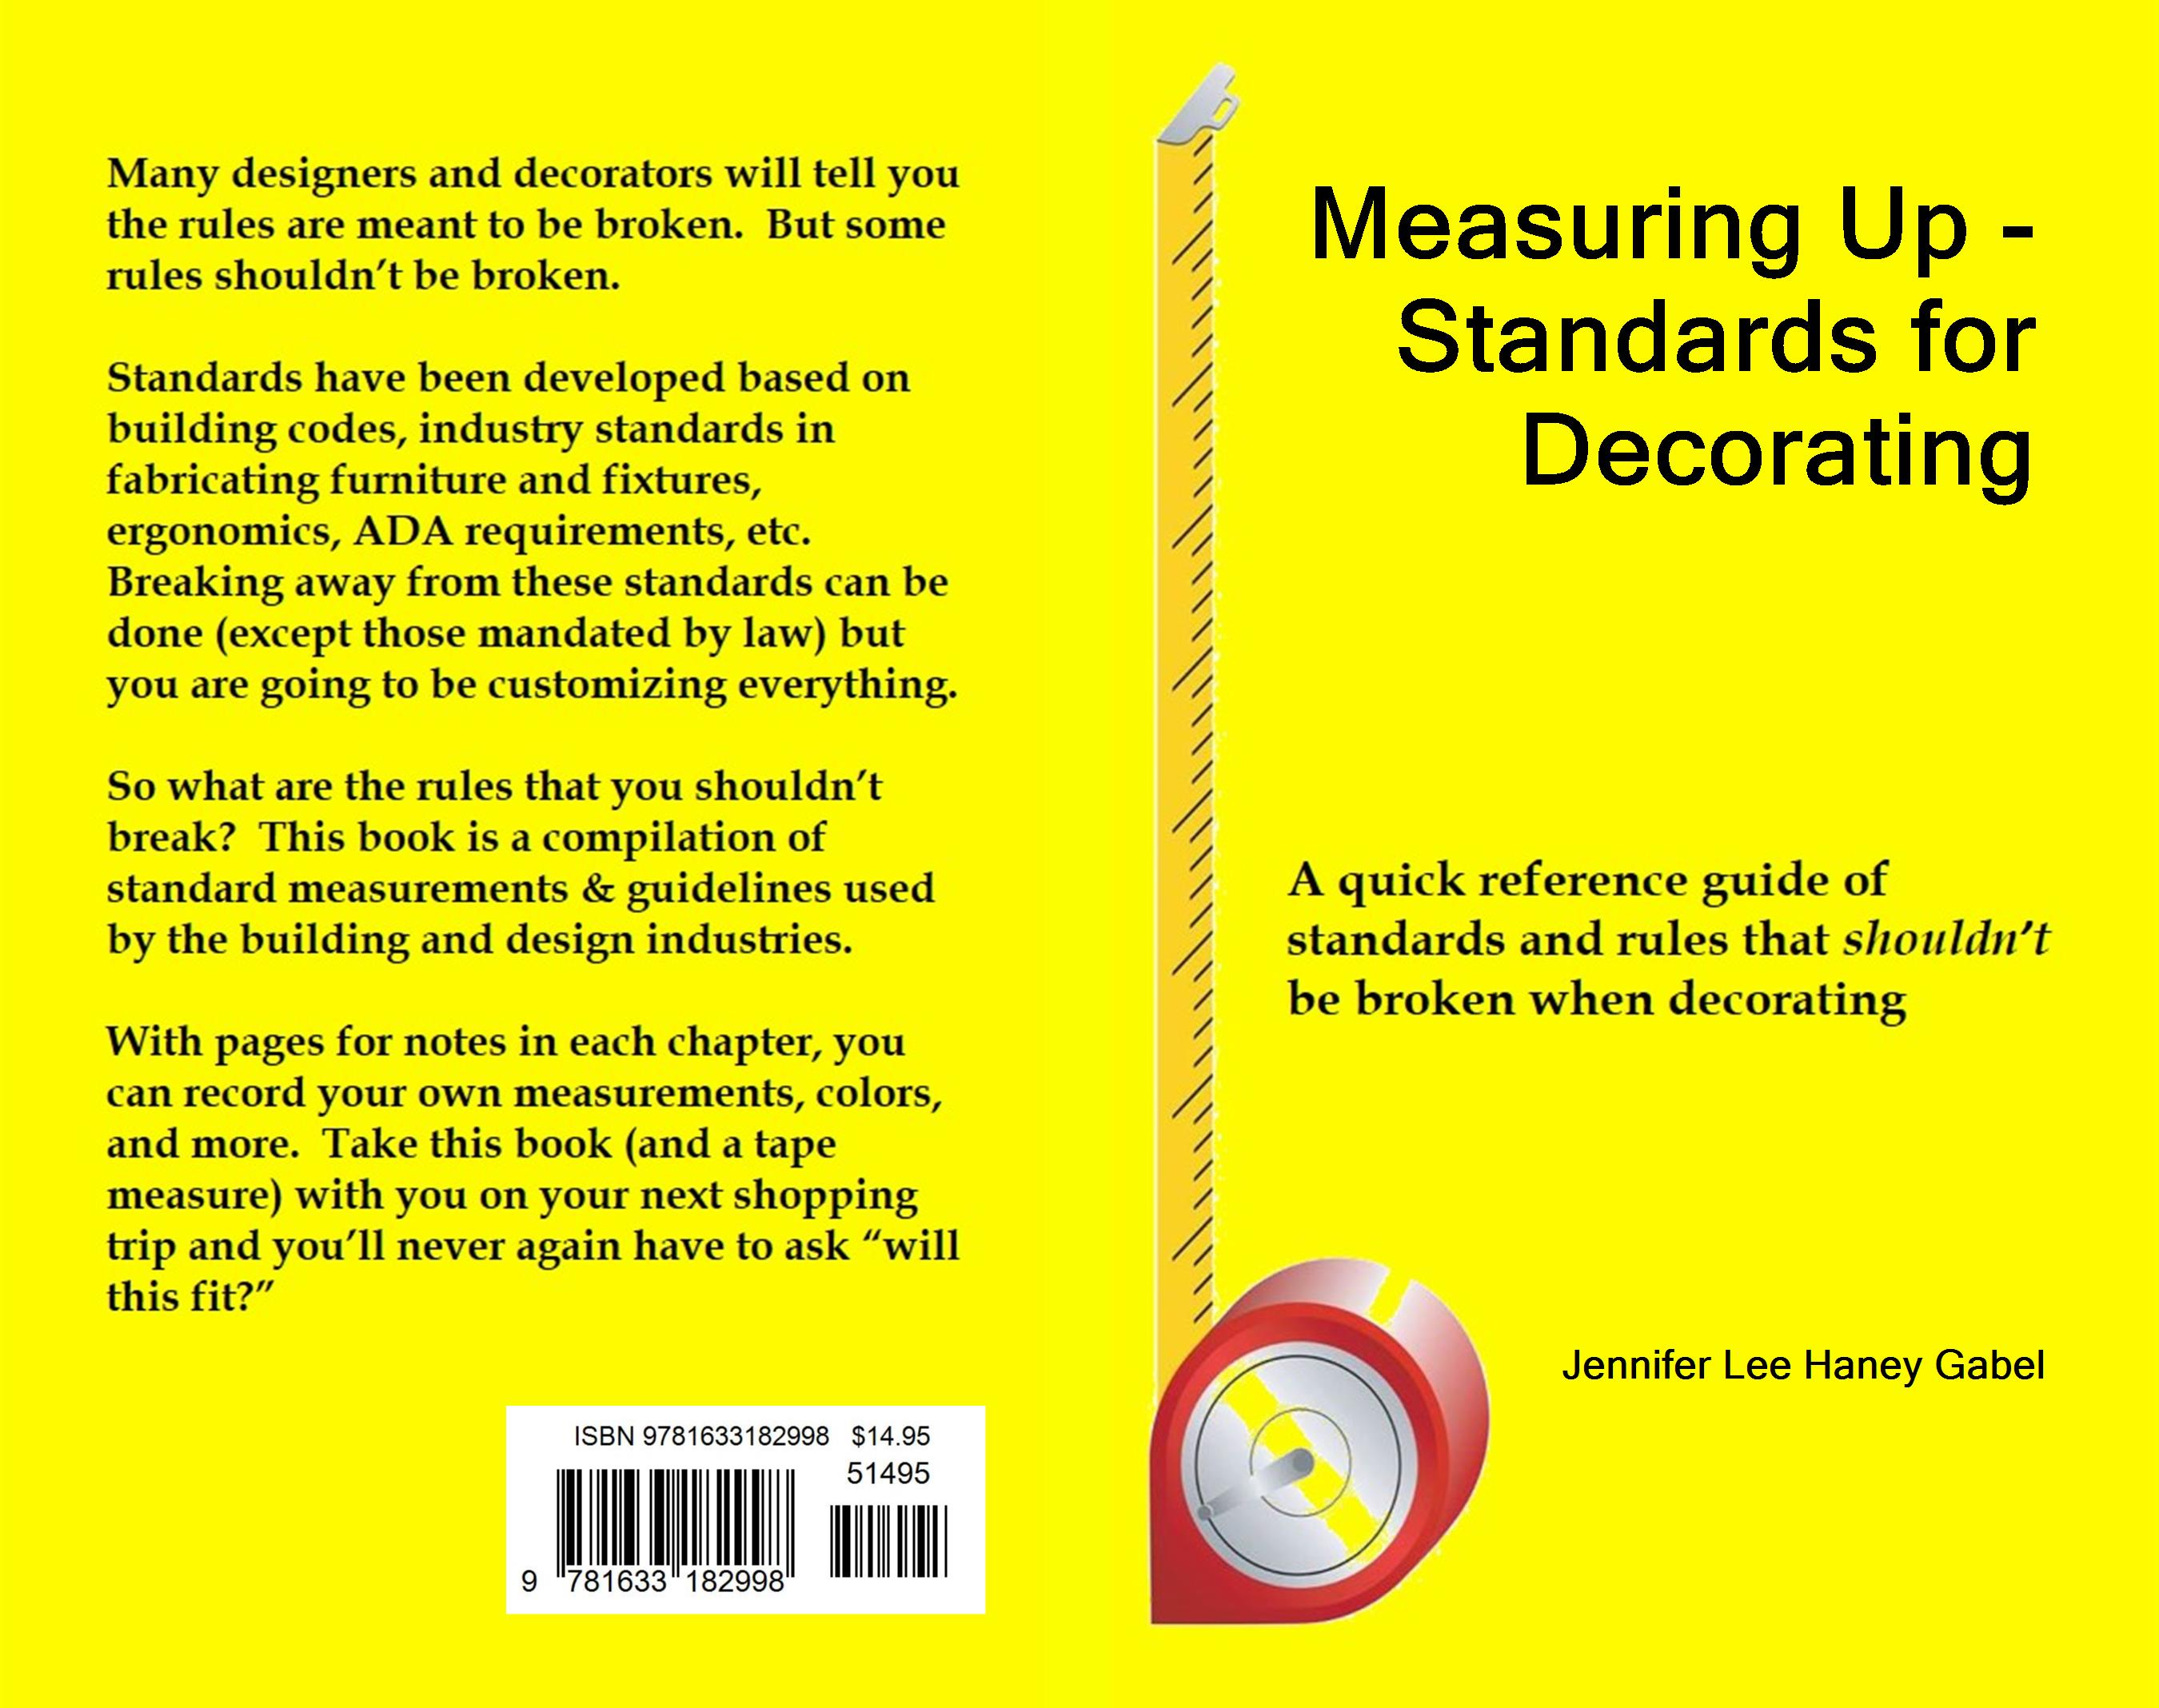 Measuring Up - Standards for Decorating cover image